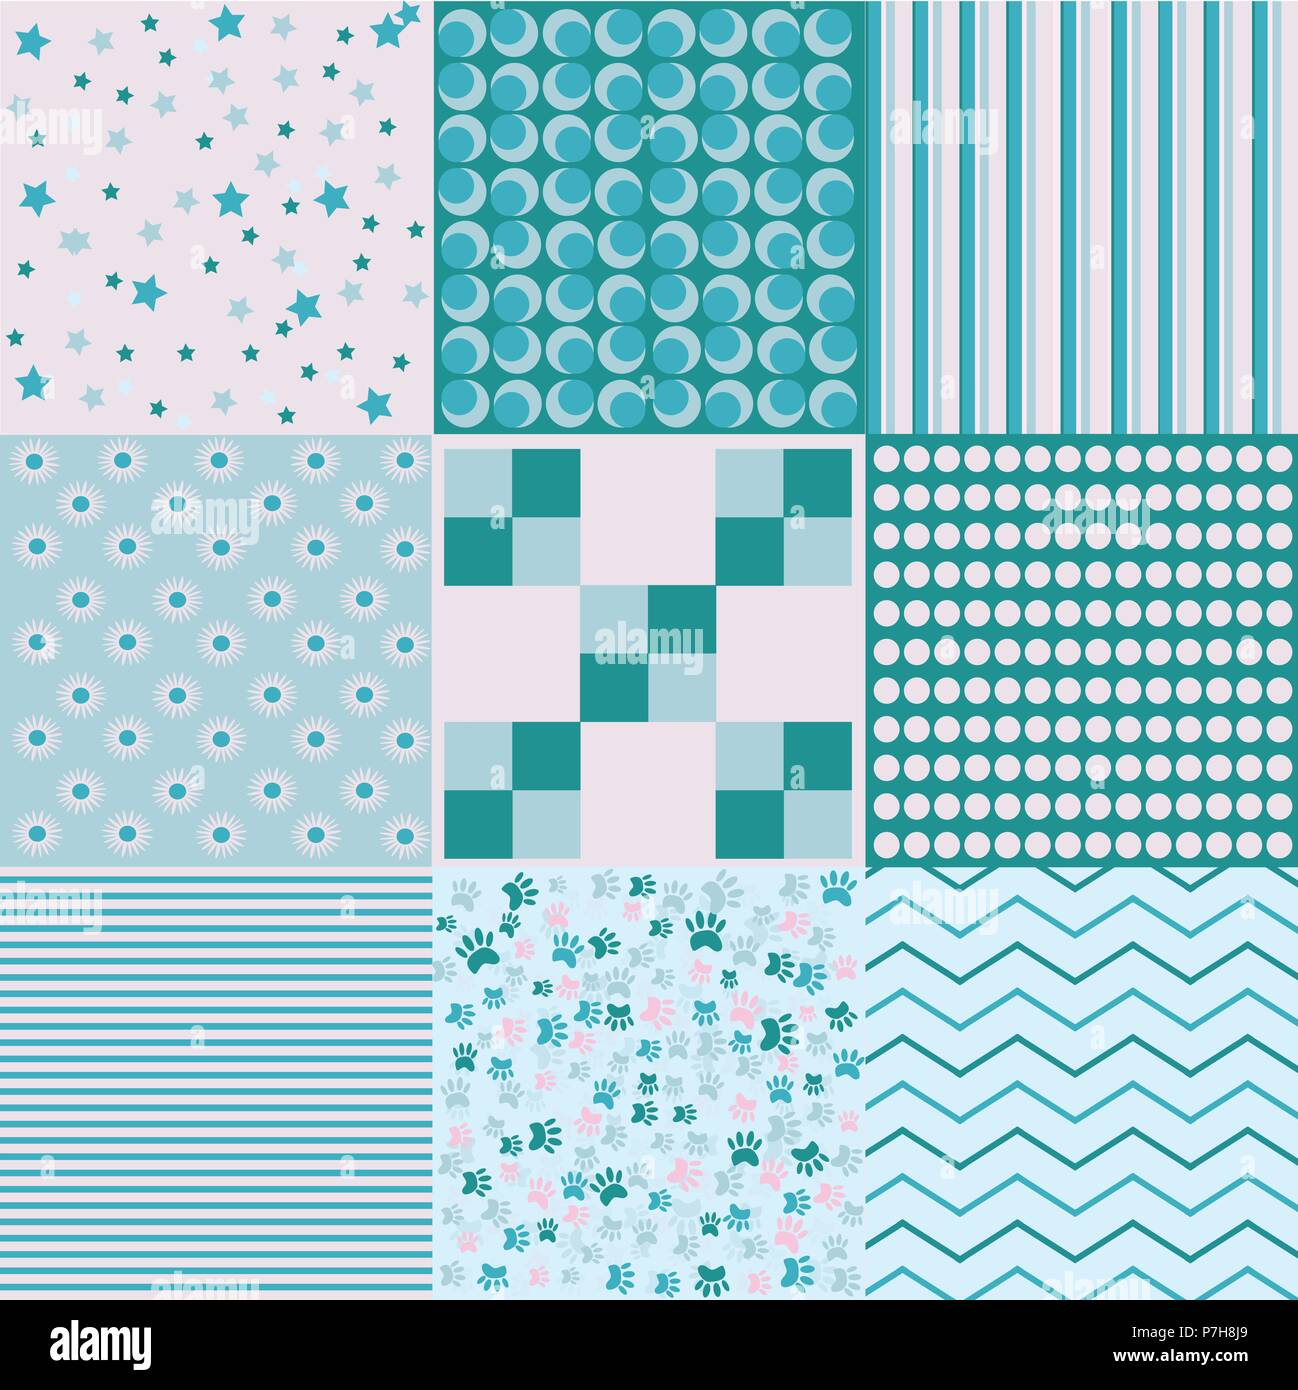 Design 8 Chic different vector patterns. Texture can be used for printing on fabric and paper or scrap booking. EPS vector background. - Stock Image